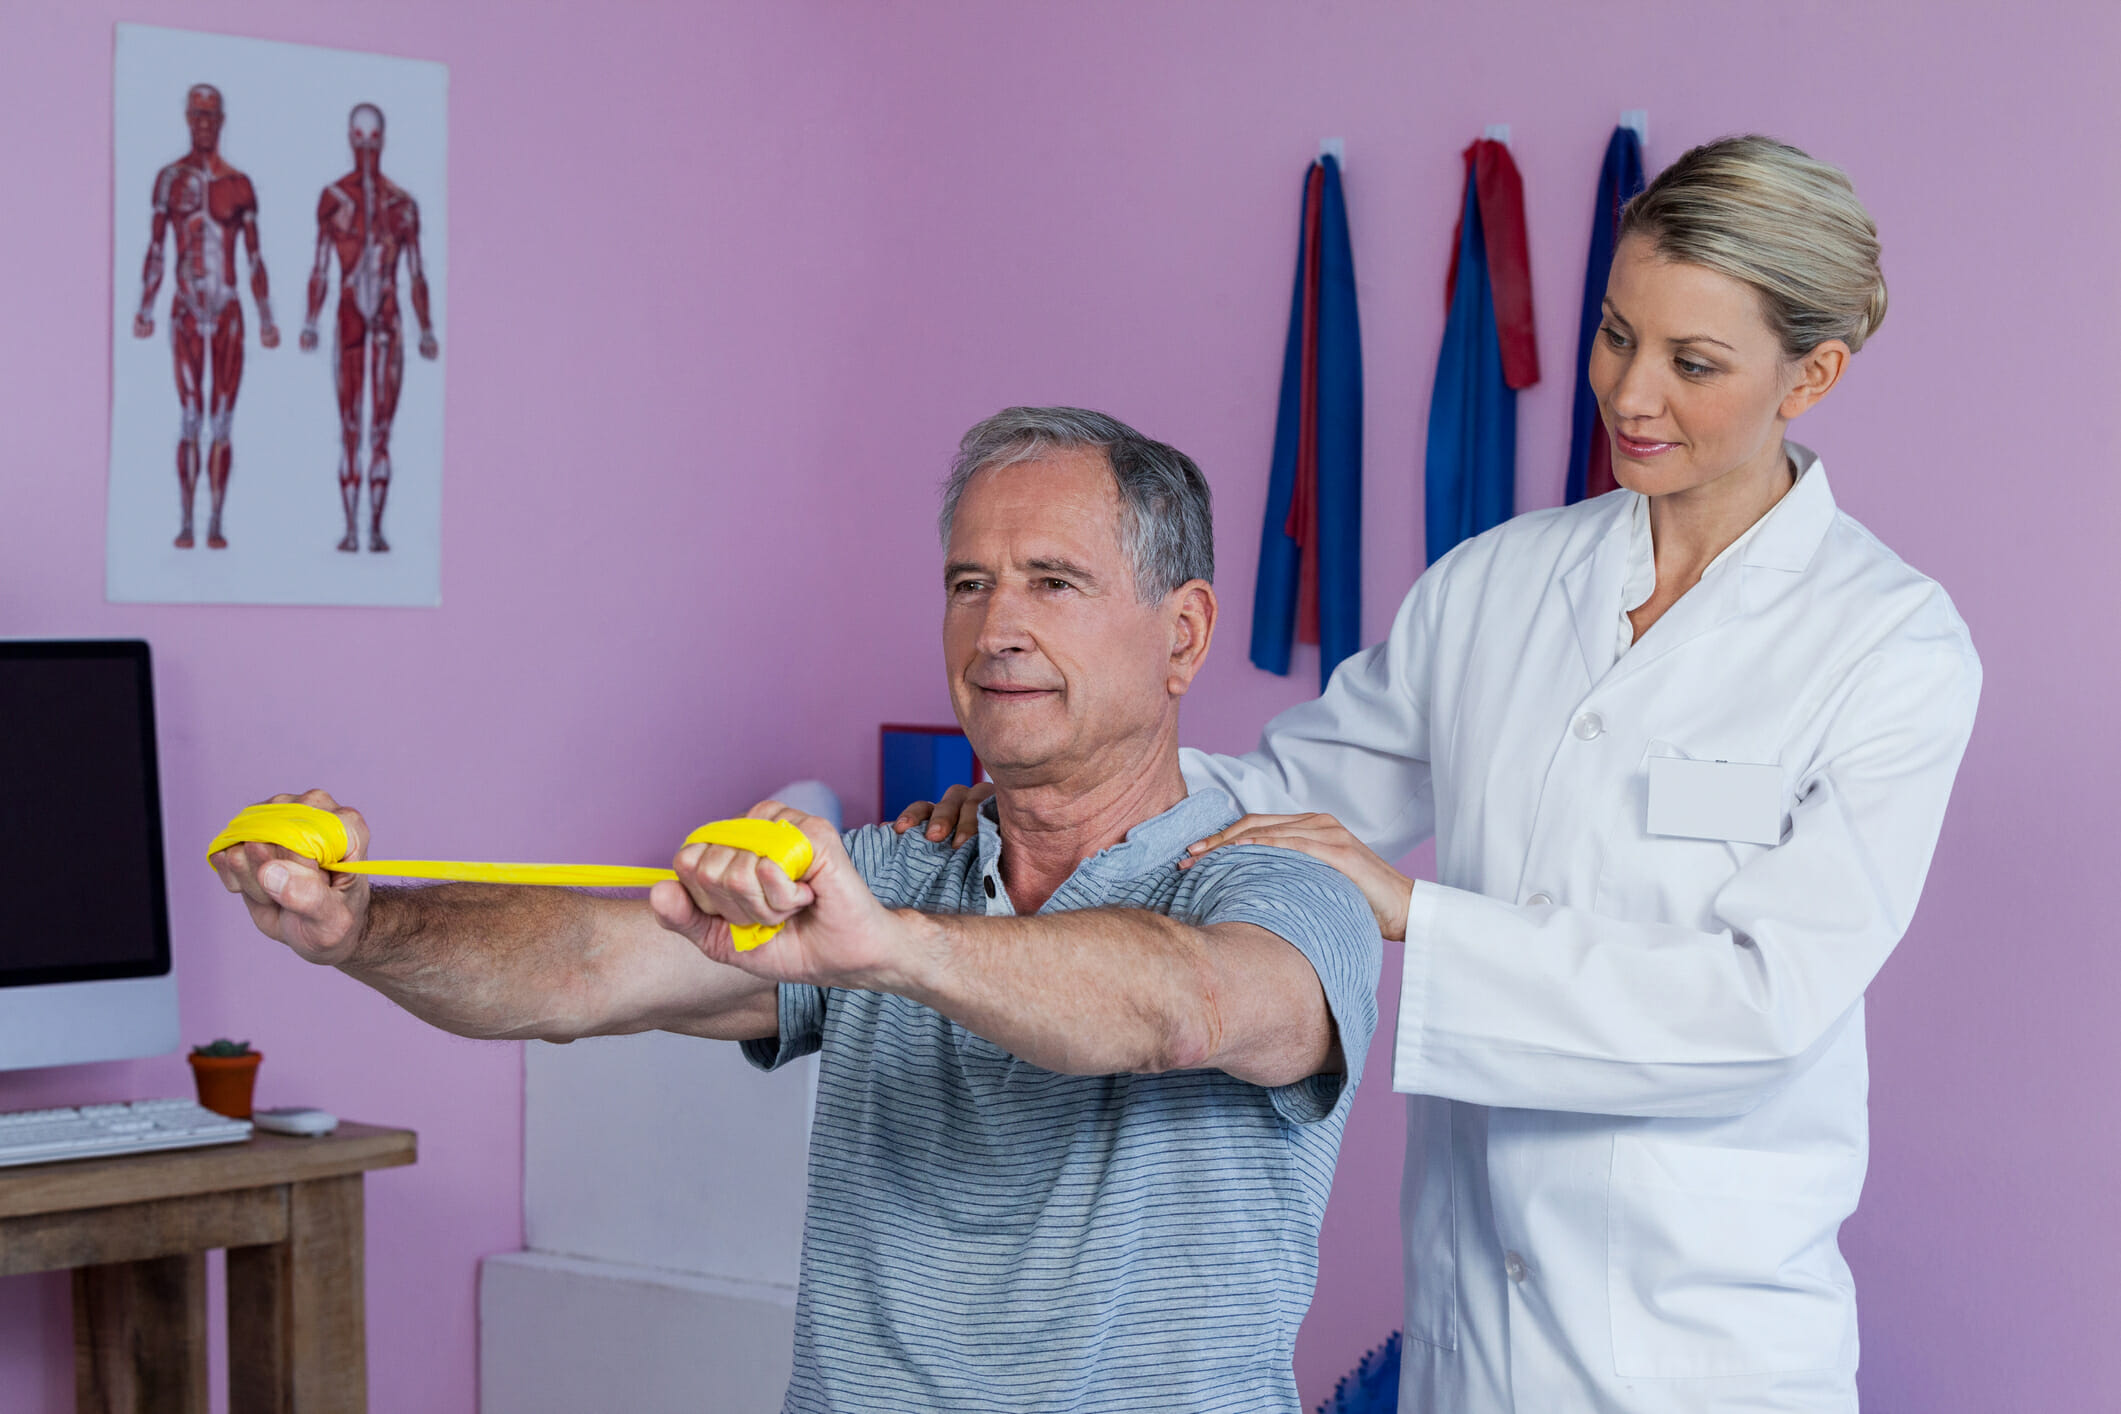 Physical Therapy After a Stroke